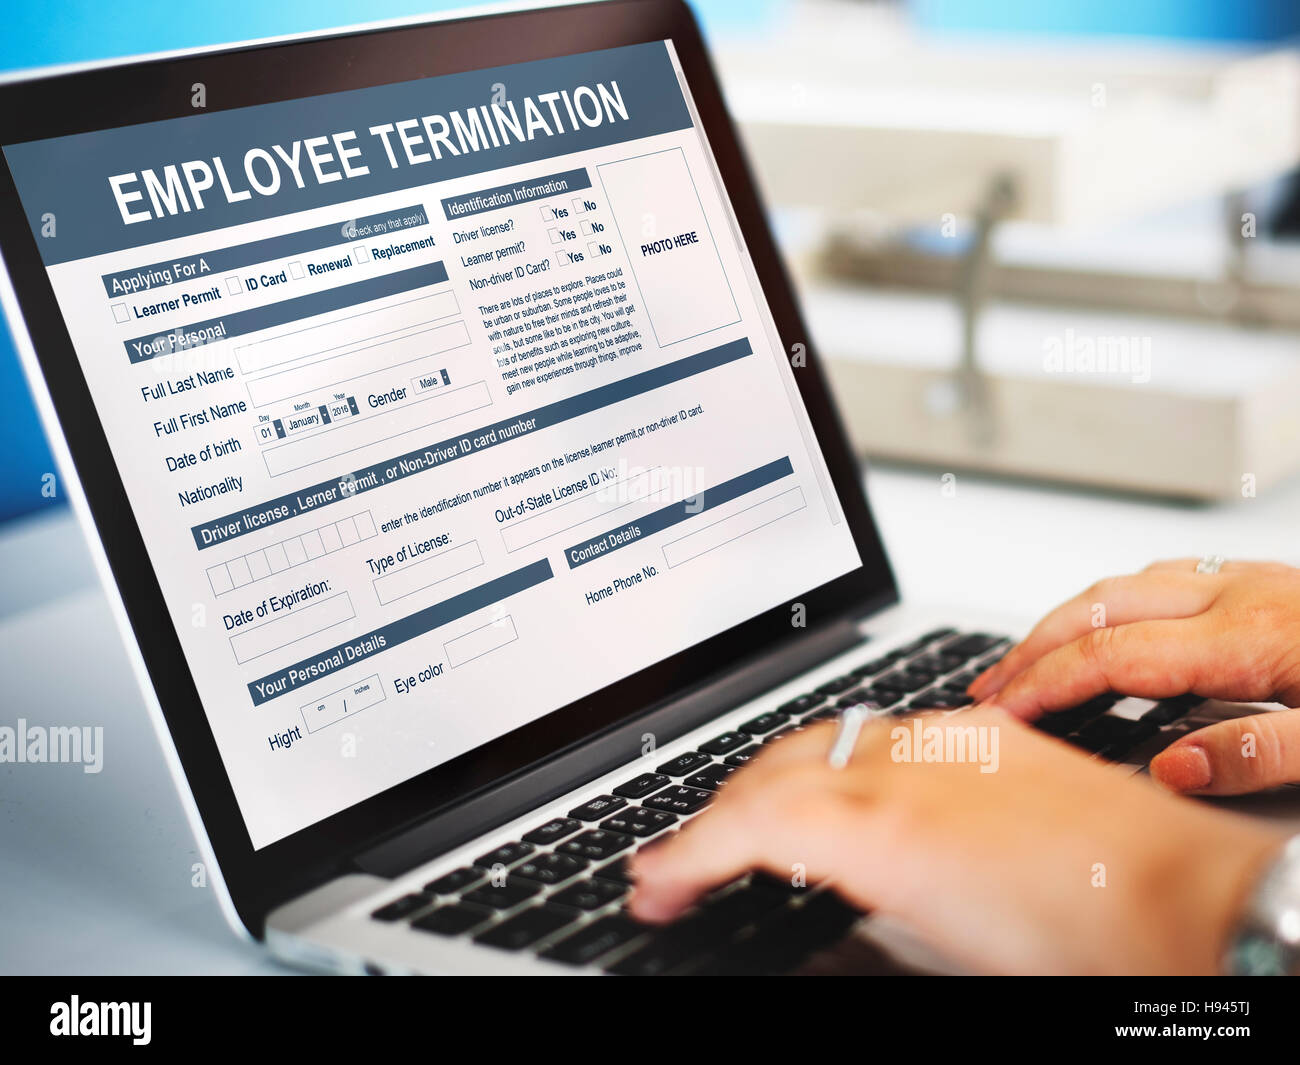 Employee Termination Form Contract Concept - Stock Image